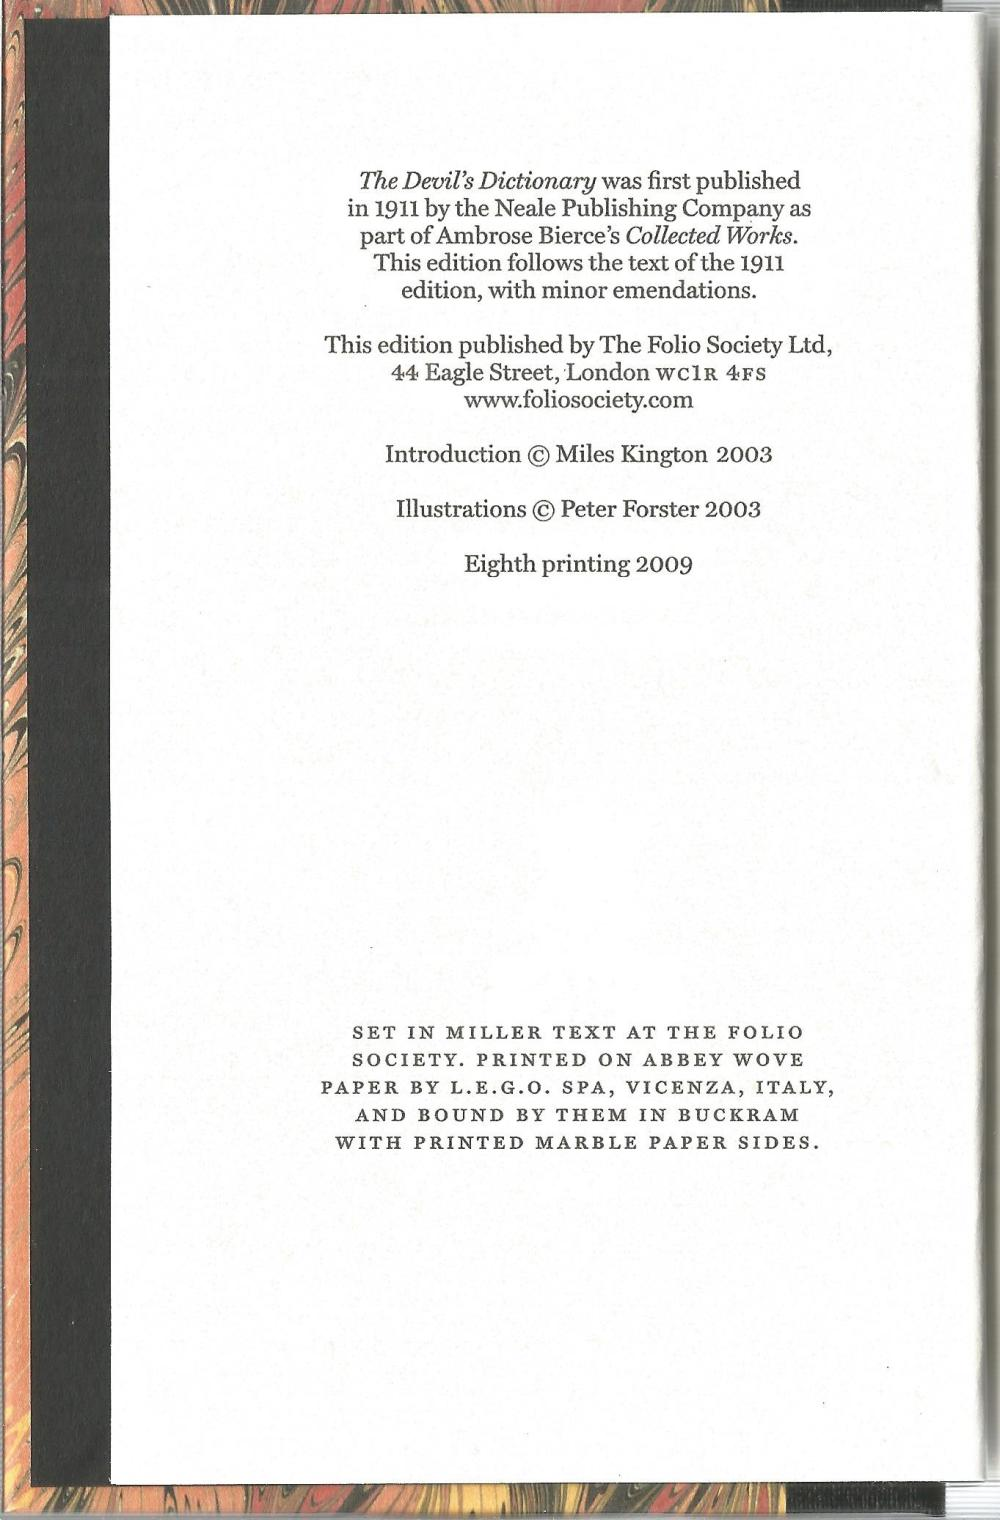 The Devil's Dictionary by Ambrose Bierce. Unsigned hardback book in cover sleeve published in 2009 - Image 2 of 2